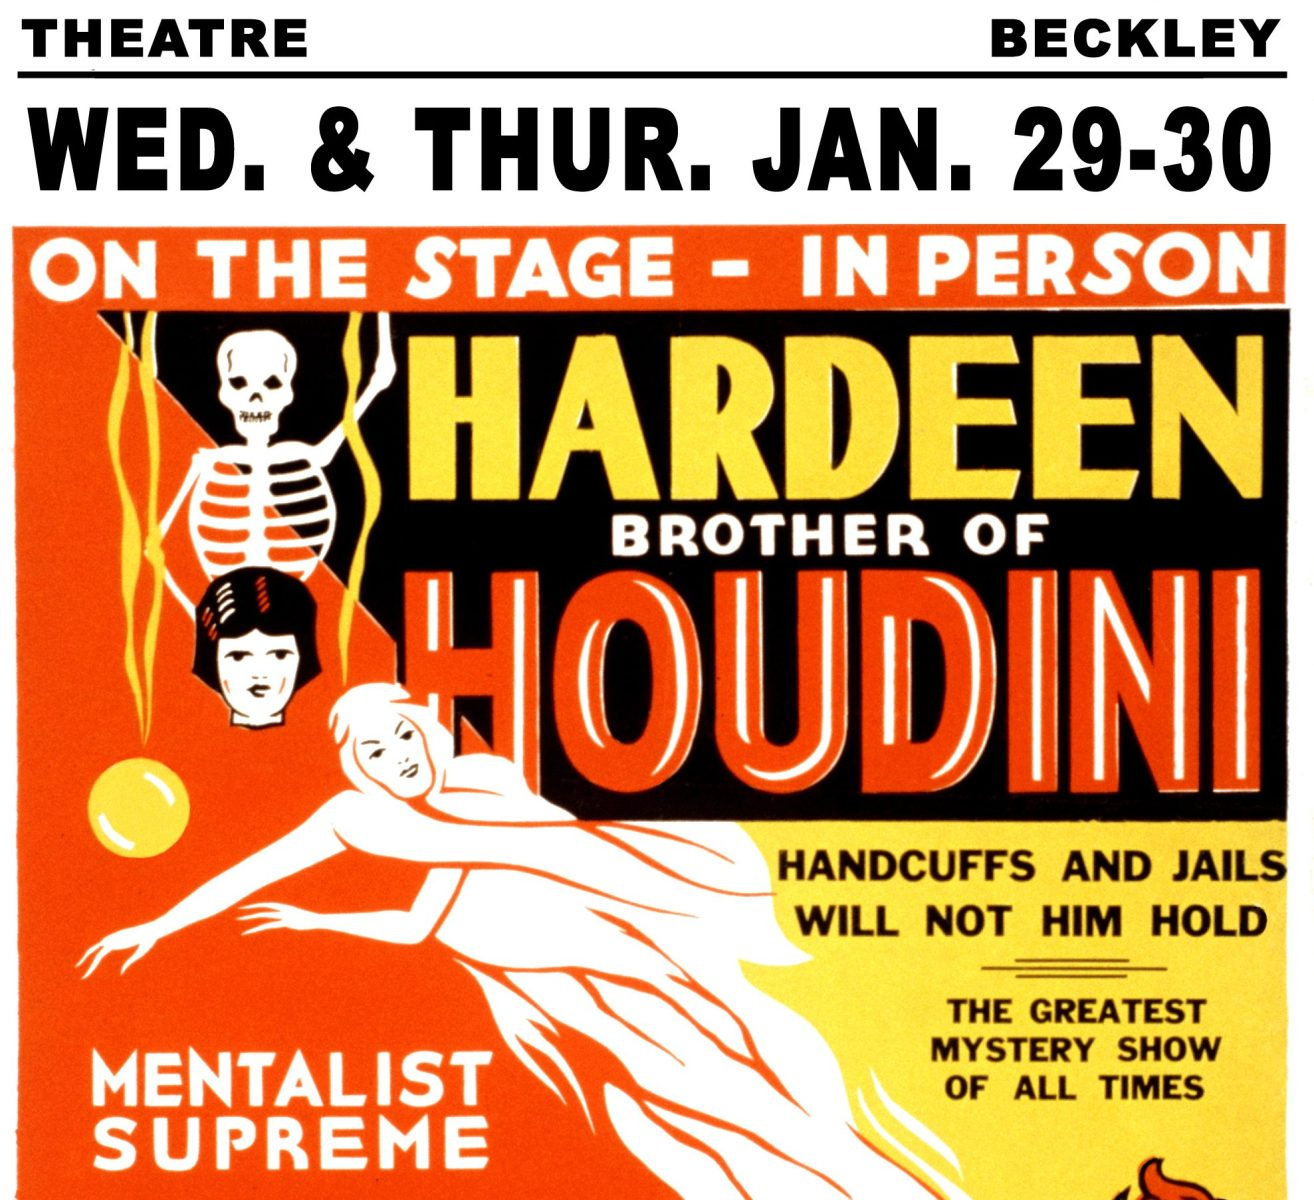 UNITED STATES - CIRCA 1931: On the stage - in person, Hardeen, brother of Houdini, handcuffs and jails will not hold him: the greatest mystery show of all times. Also with mentalist supreme, Princess Yvonne, the mystery girl. (Photo by Buyenlarge/Getty Images)